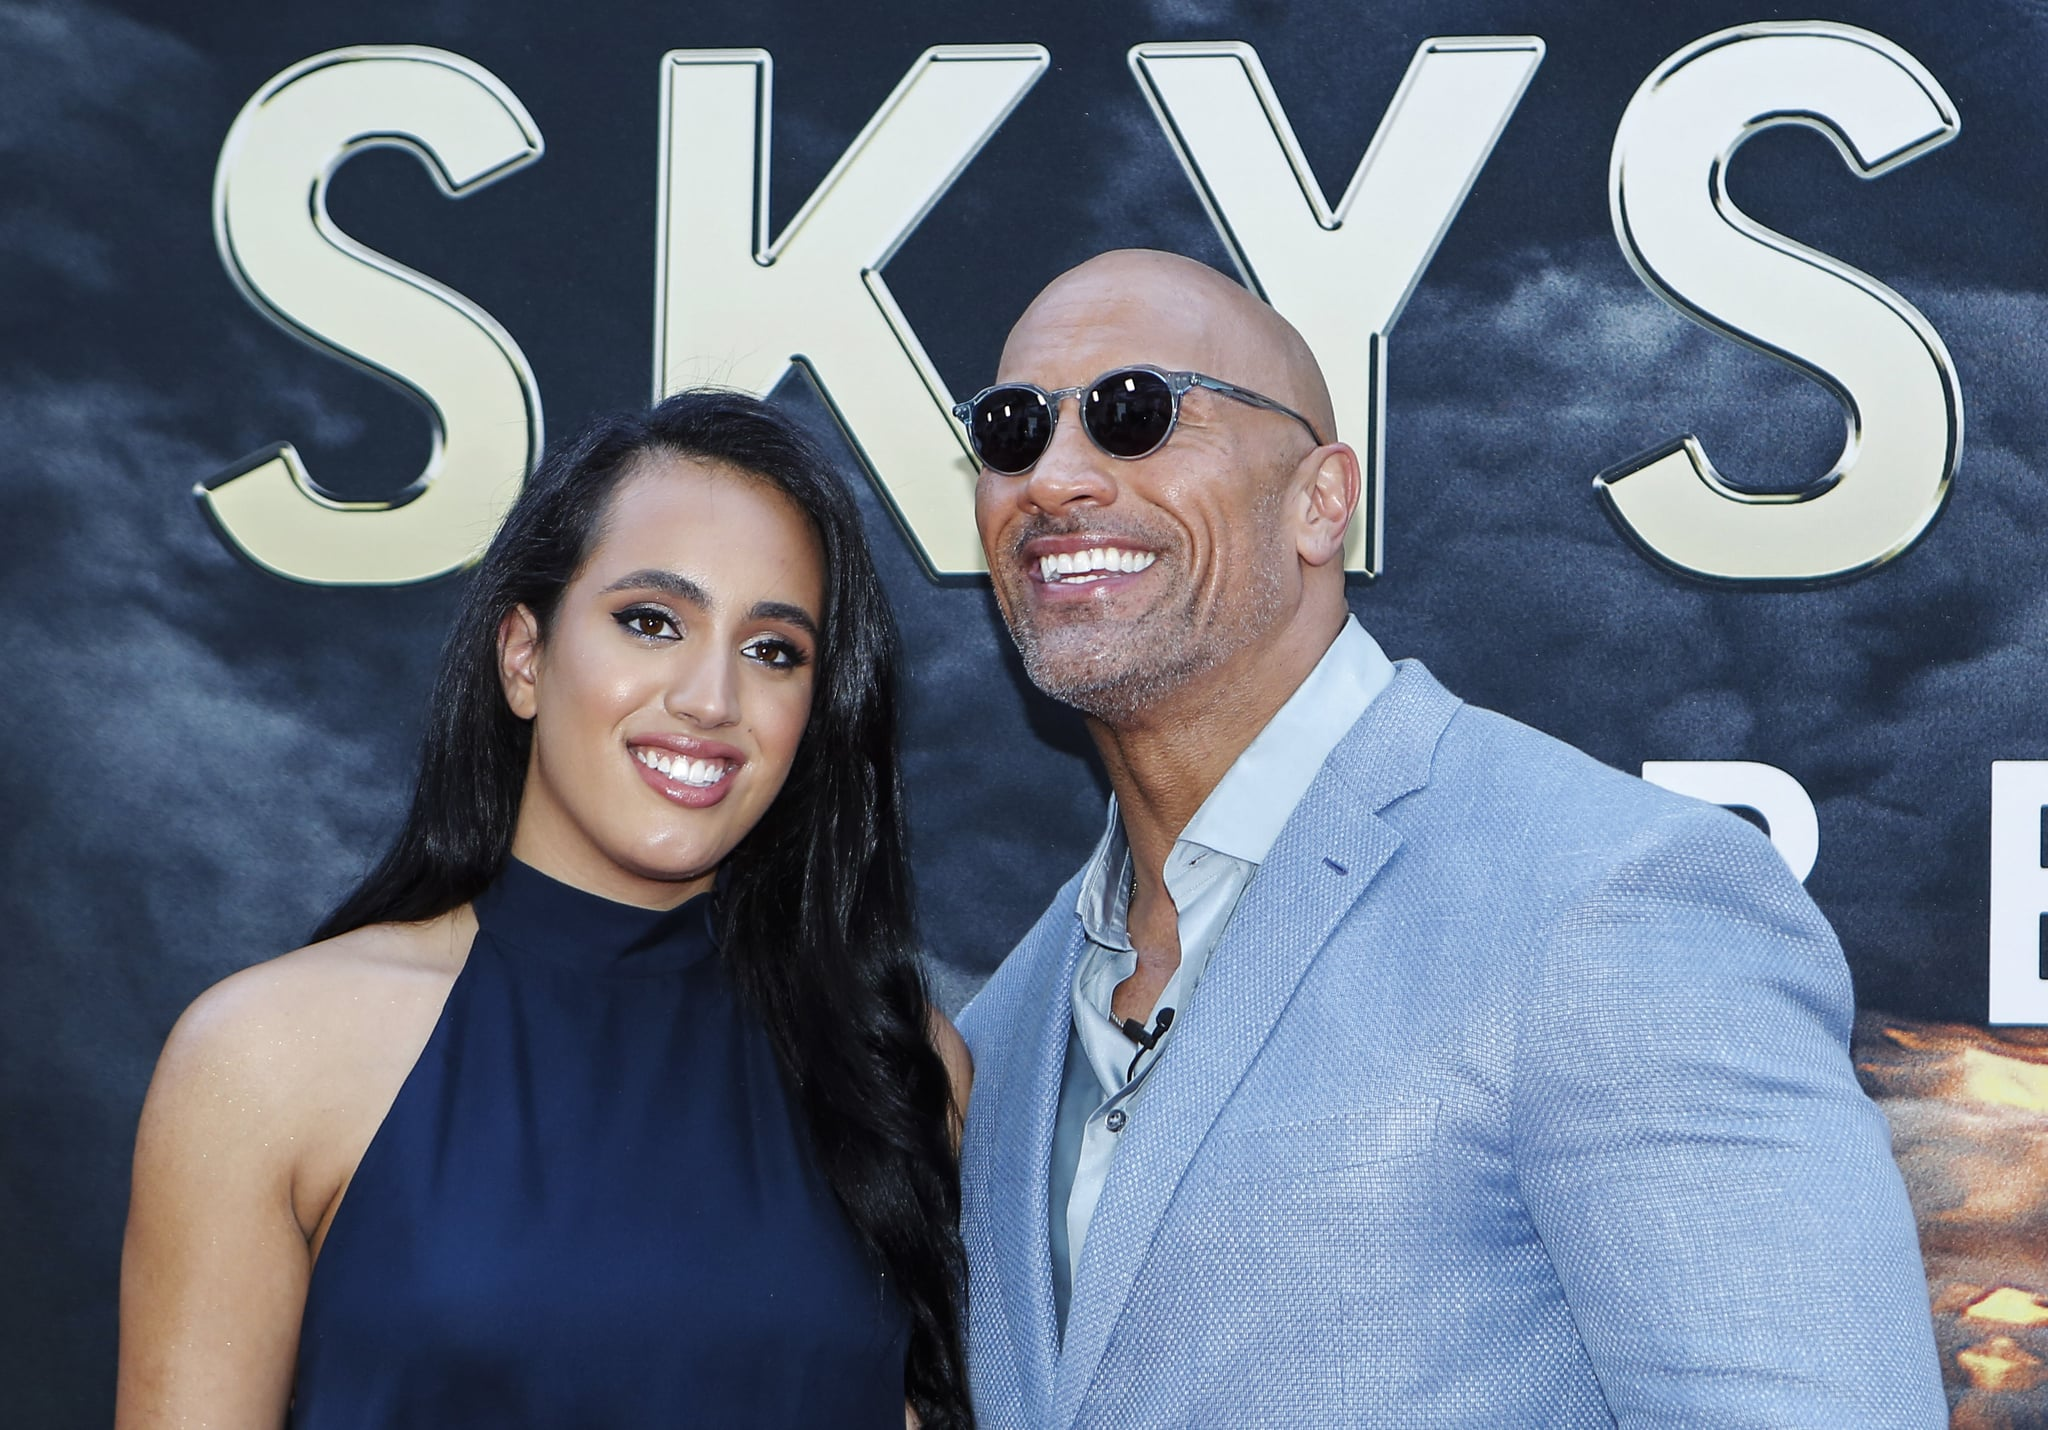 Actor Dwayne Johnson and his daughter Simone Alexandra Johnson attend the premiere of 'Skyscraper' on July 10, 2018 in New York City. (Photo by KENA BETANCUR / AFP)        (Photo credit should read KENA BETANCUR/AFP/Getty Images)